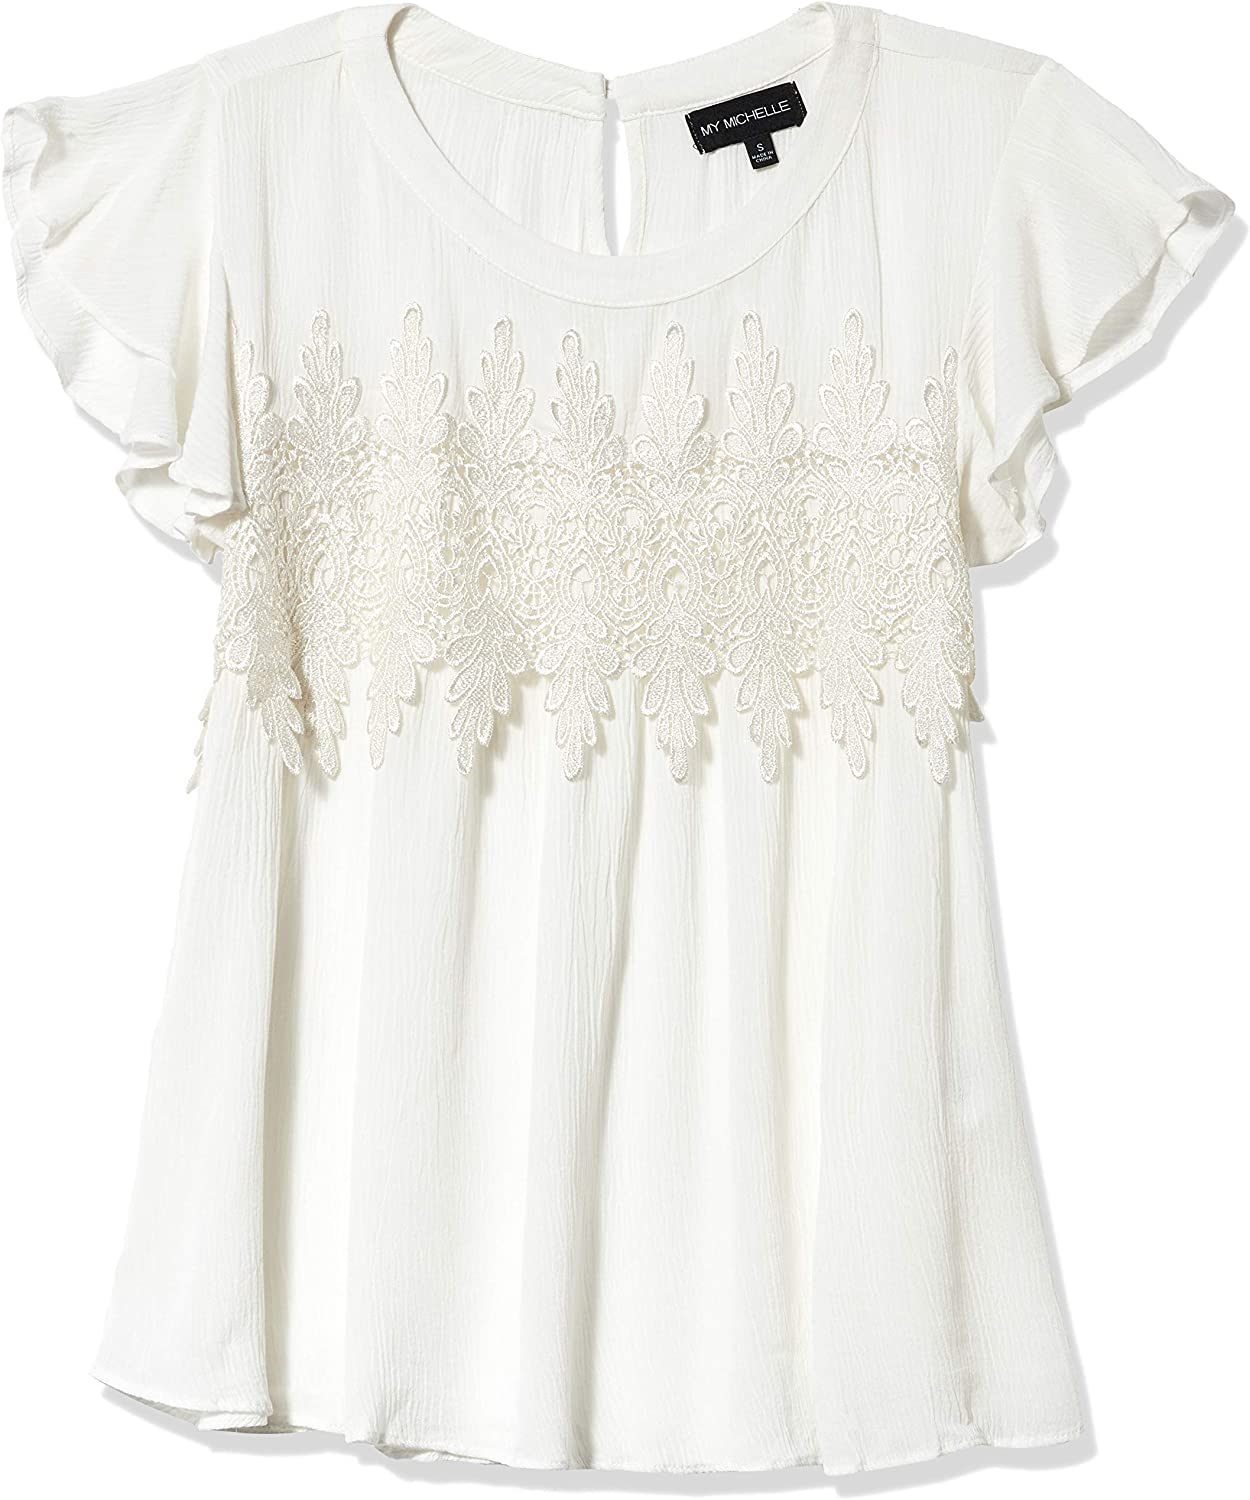 My Michelle Womens Flutter Sleeve Lace Detail Top